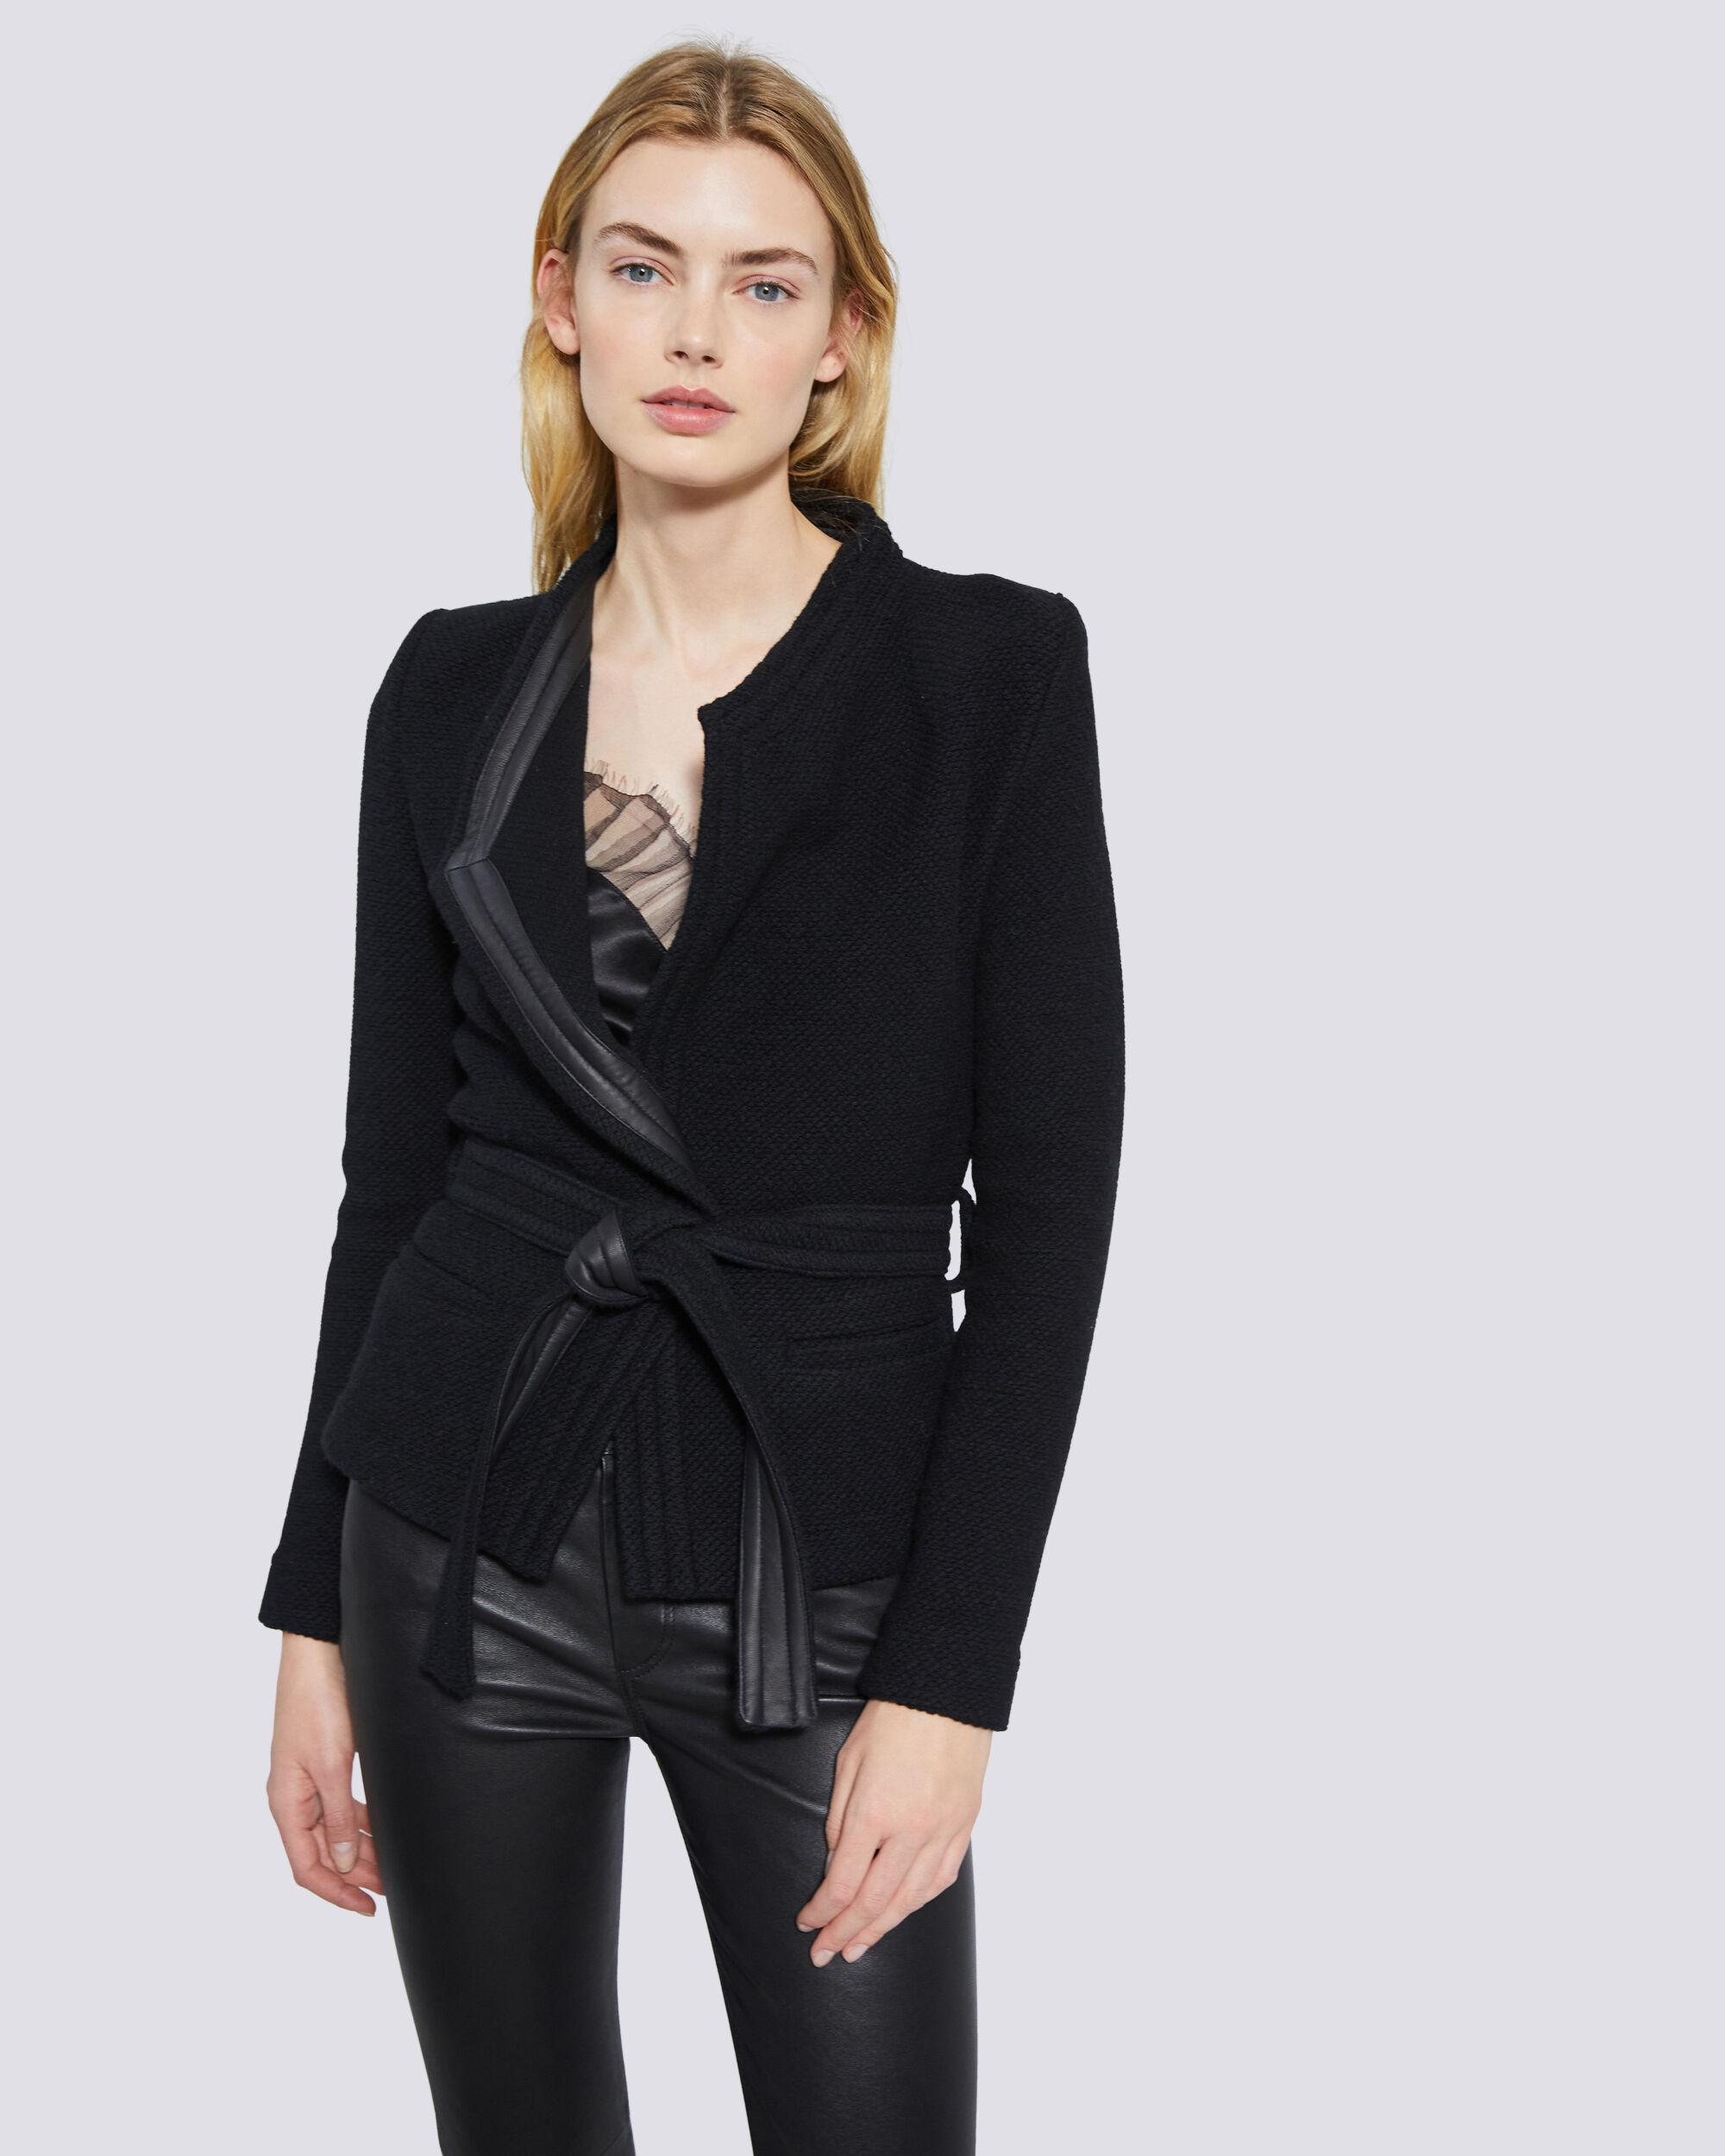 AWA LEATHER TRIMMED WOOL JACKET